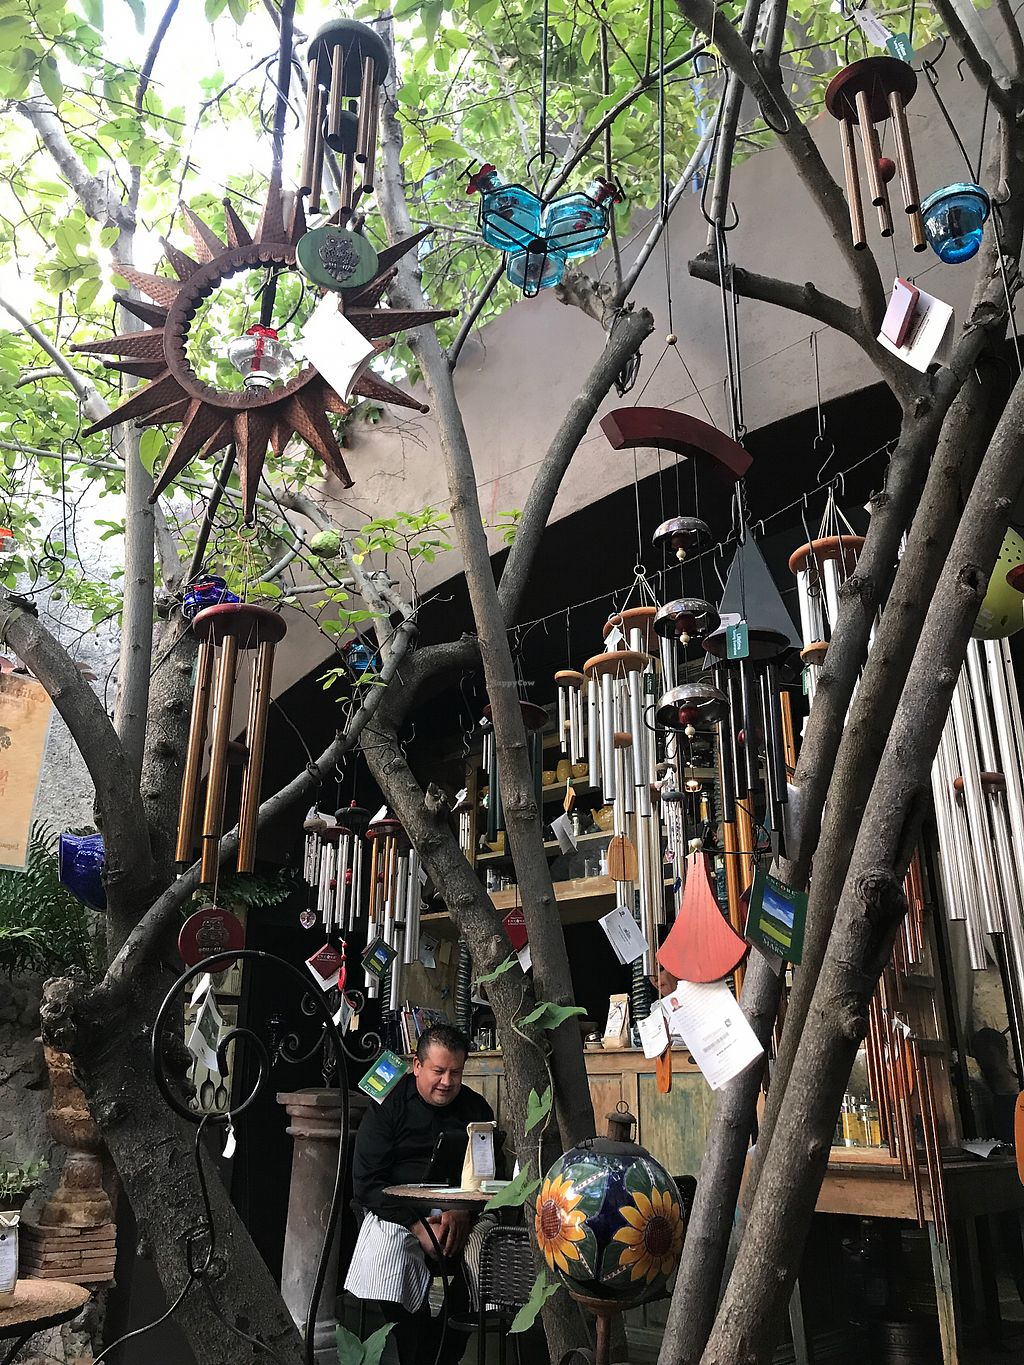 """Photo of Nectar  by <a href=""""/members/profile/MarinKat"""">MarinKat</a> <br/>Lots of wind chimes on this shady outdoor patio <br/> October 25, 2017  - <a href='/contact/abuse/image/51693/318843'>Report</a>"""